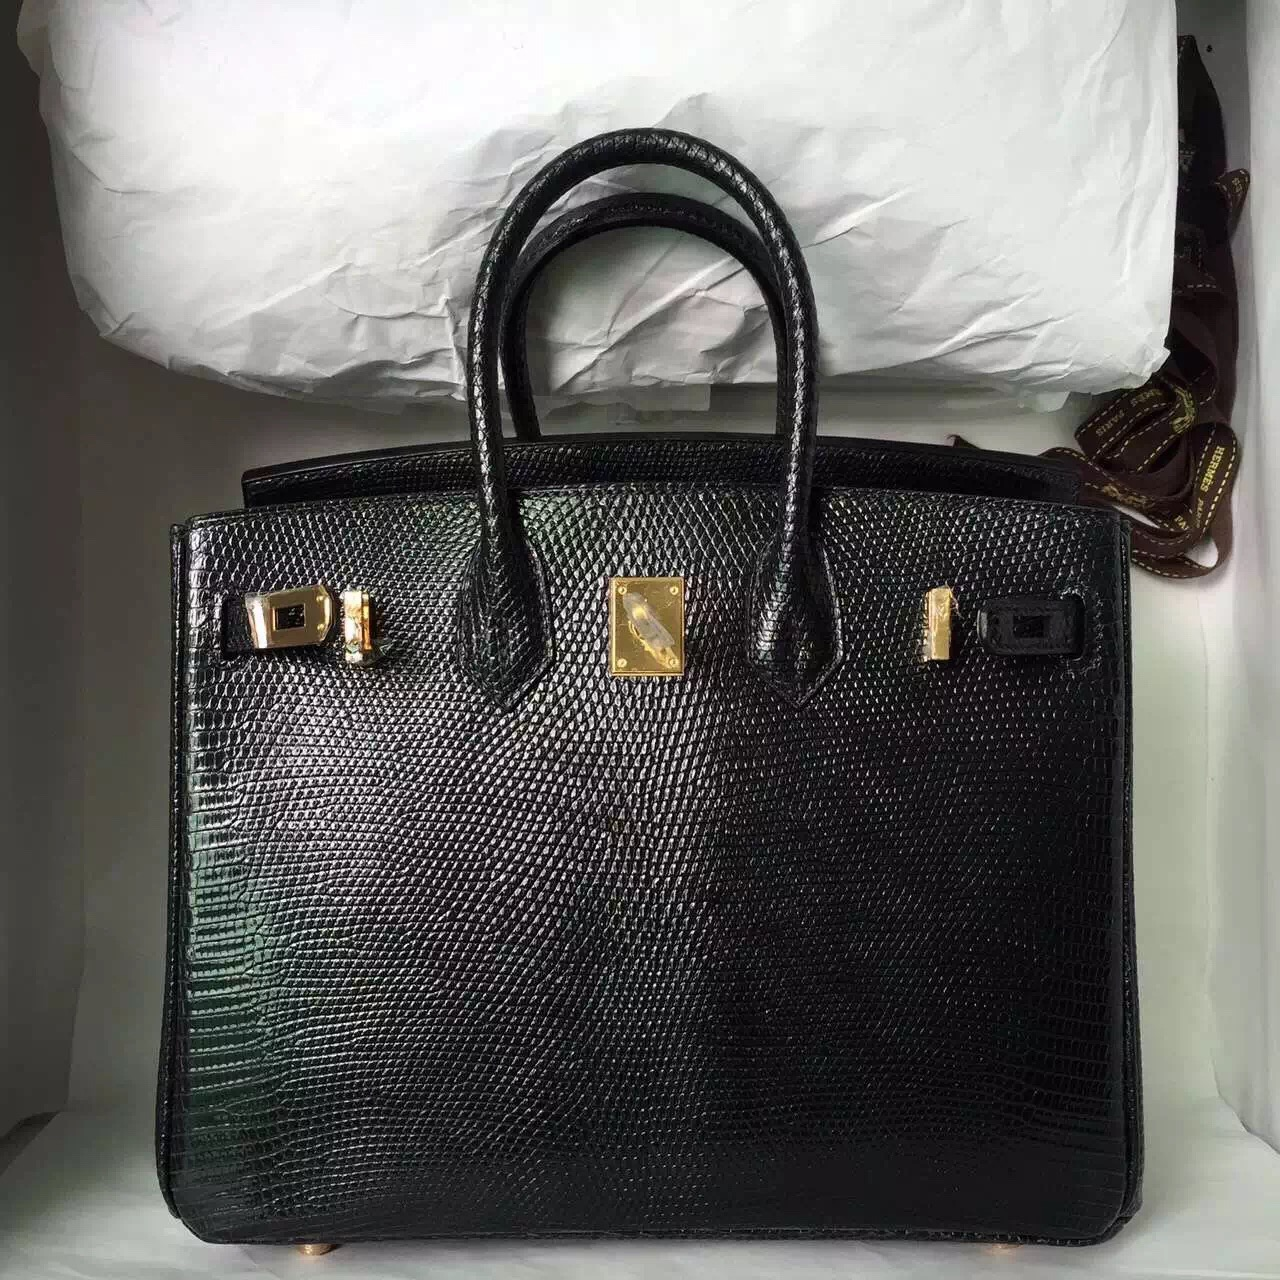 Wholesale Hermes Lizard Leather Birkin25 in CK89 Black